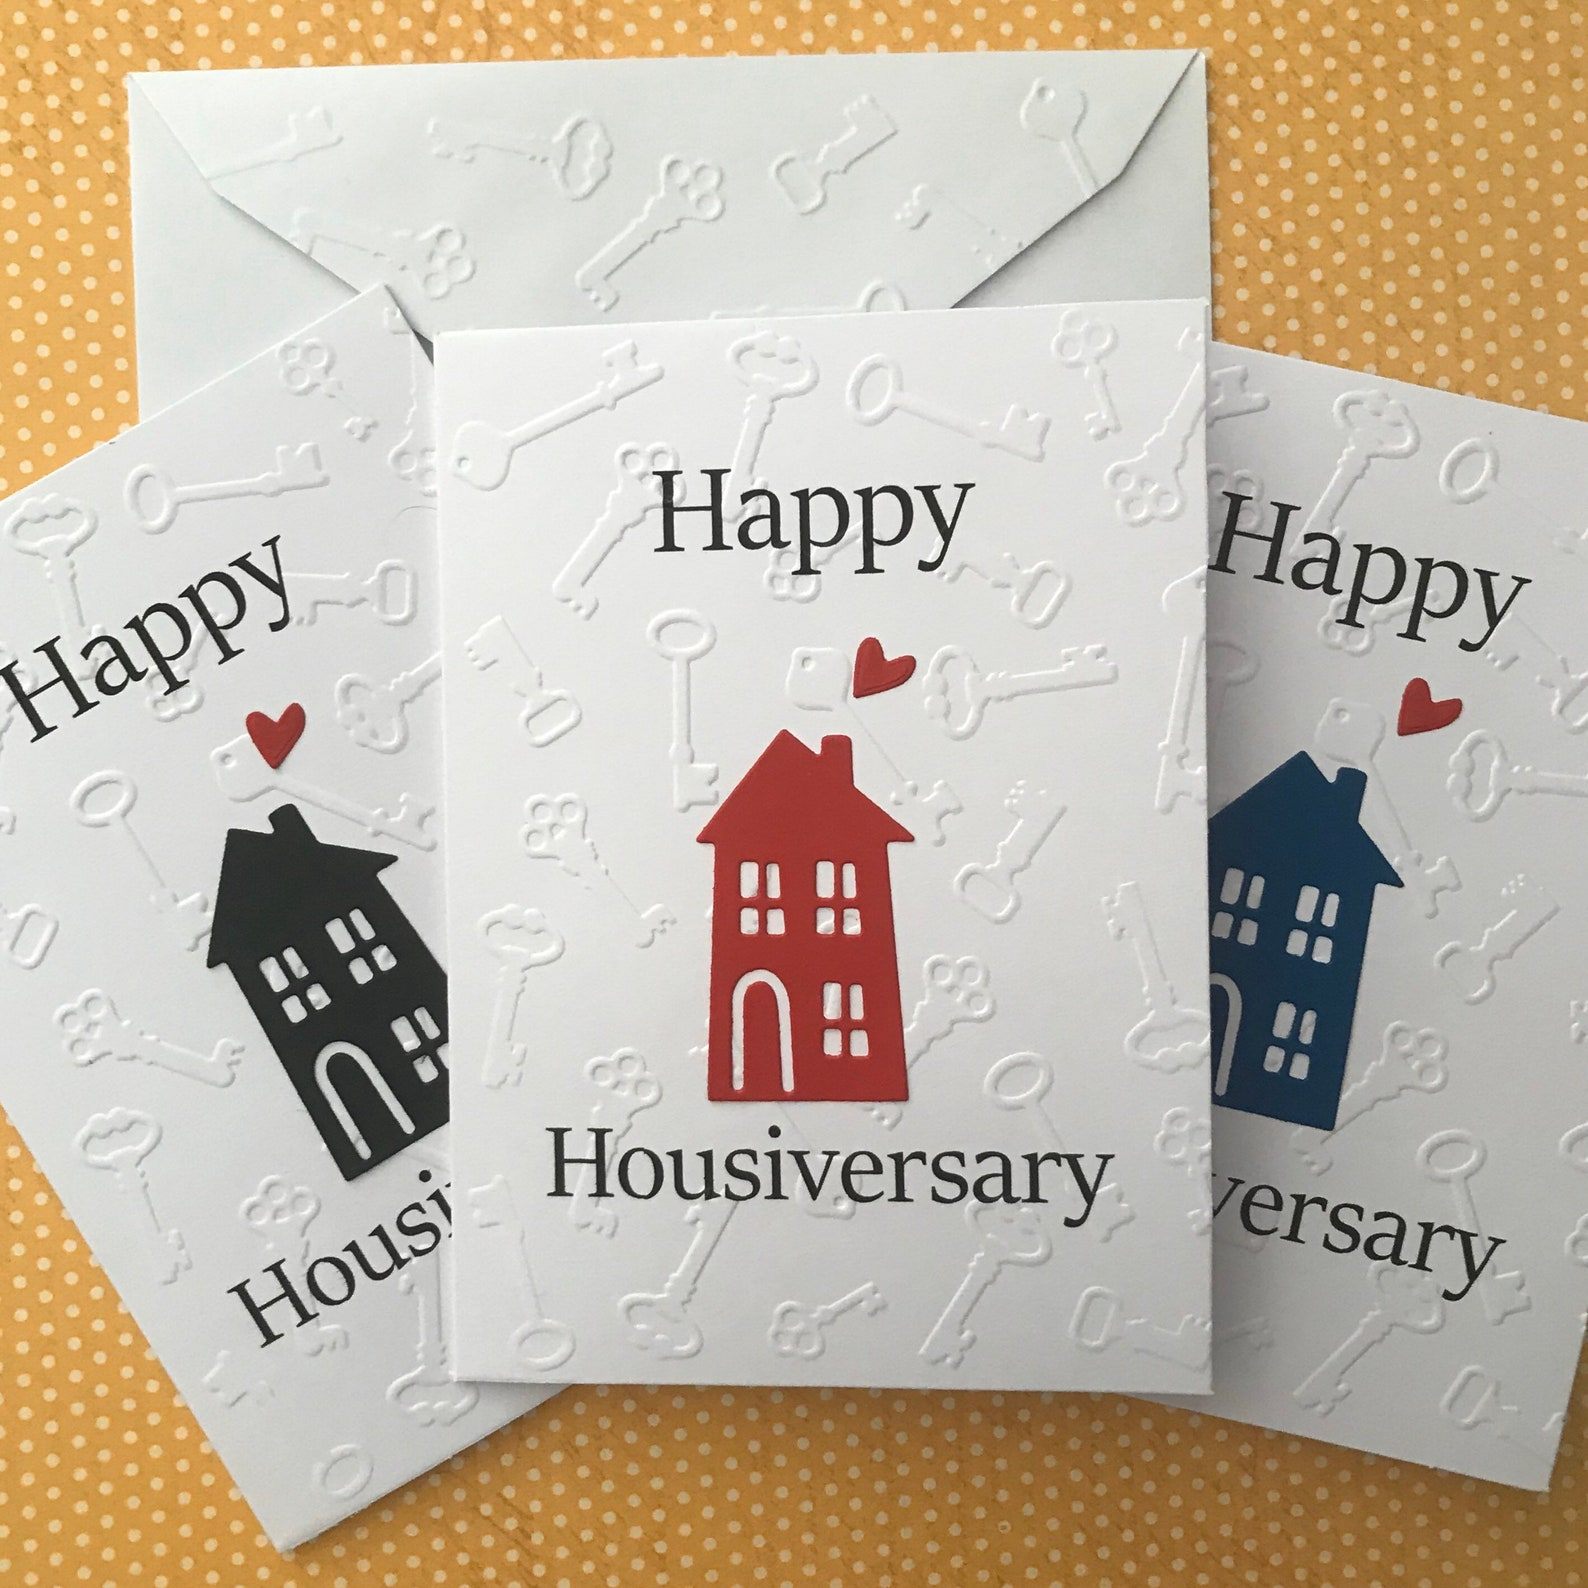 Happy Housiversary House Card